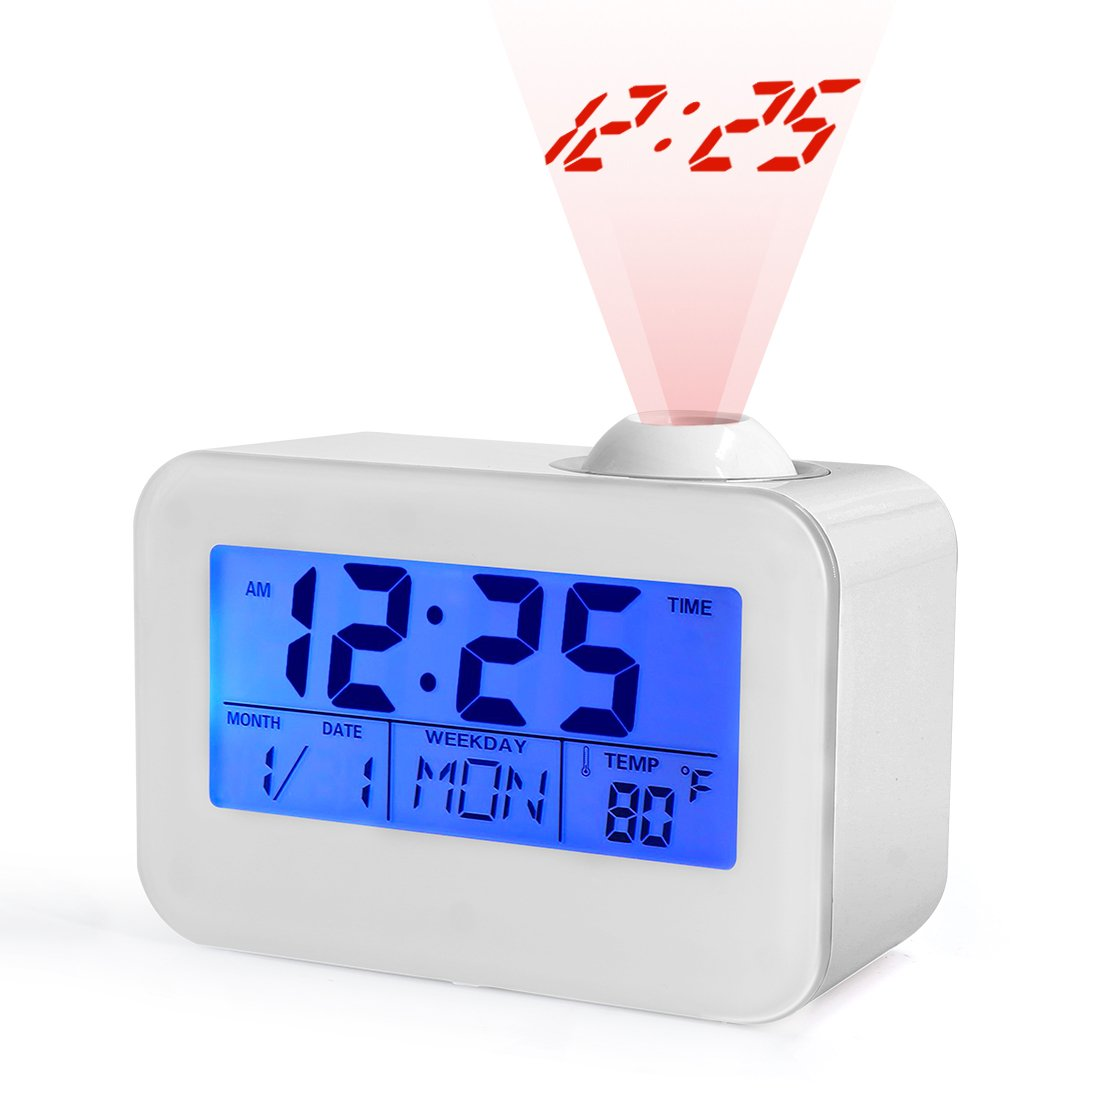 Projection Alarm Clock,USCVIS 12/24 Hour Snooze Function, Sound Controlled Backlight, Display with Indoor Temperature/Weekday/DATE on the LED Screen.